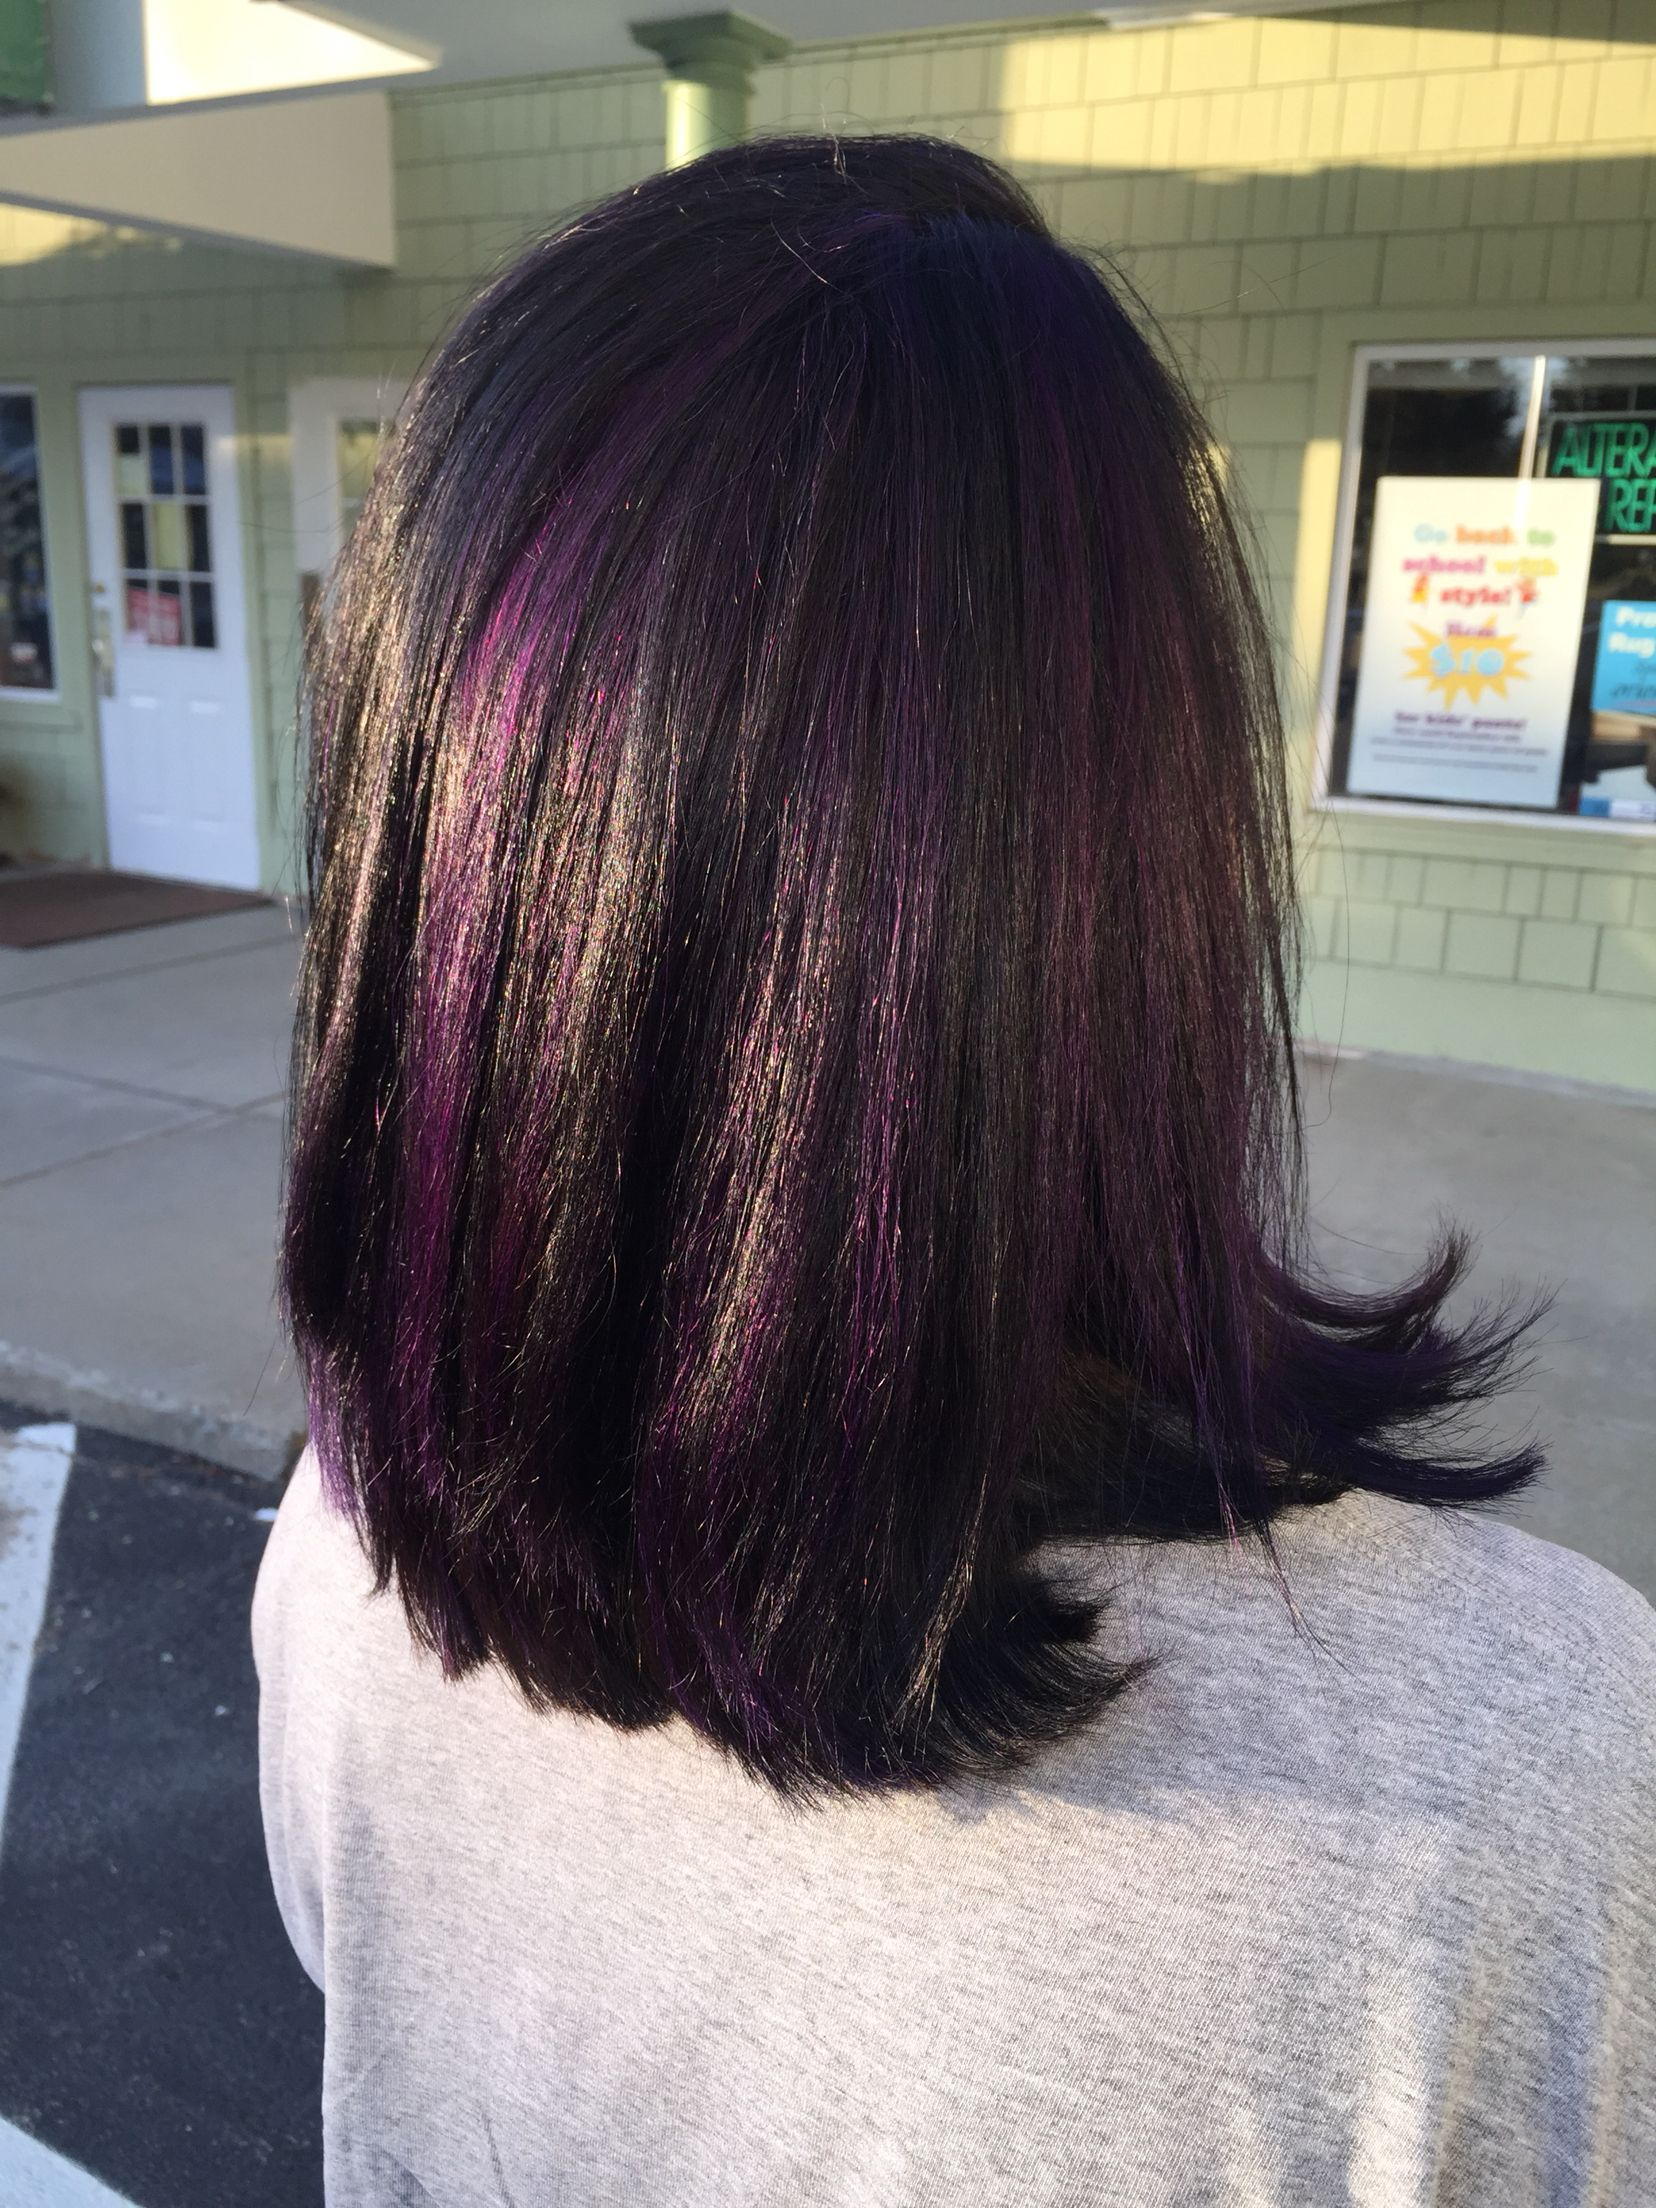 A Touch Of Purple Hairstyle Peekaboo Hair Peekaboo Hair Colors Hair Color Purple